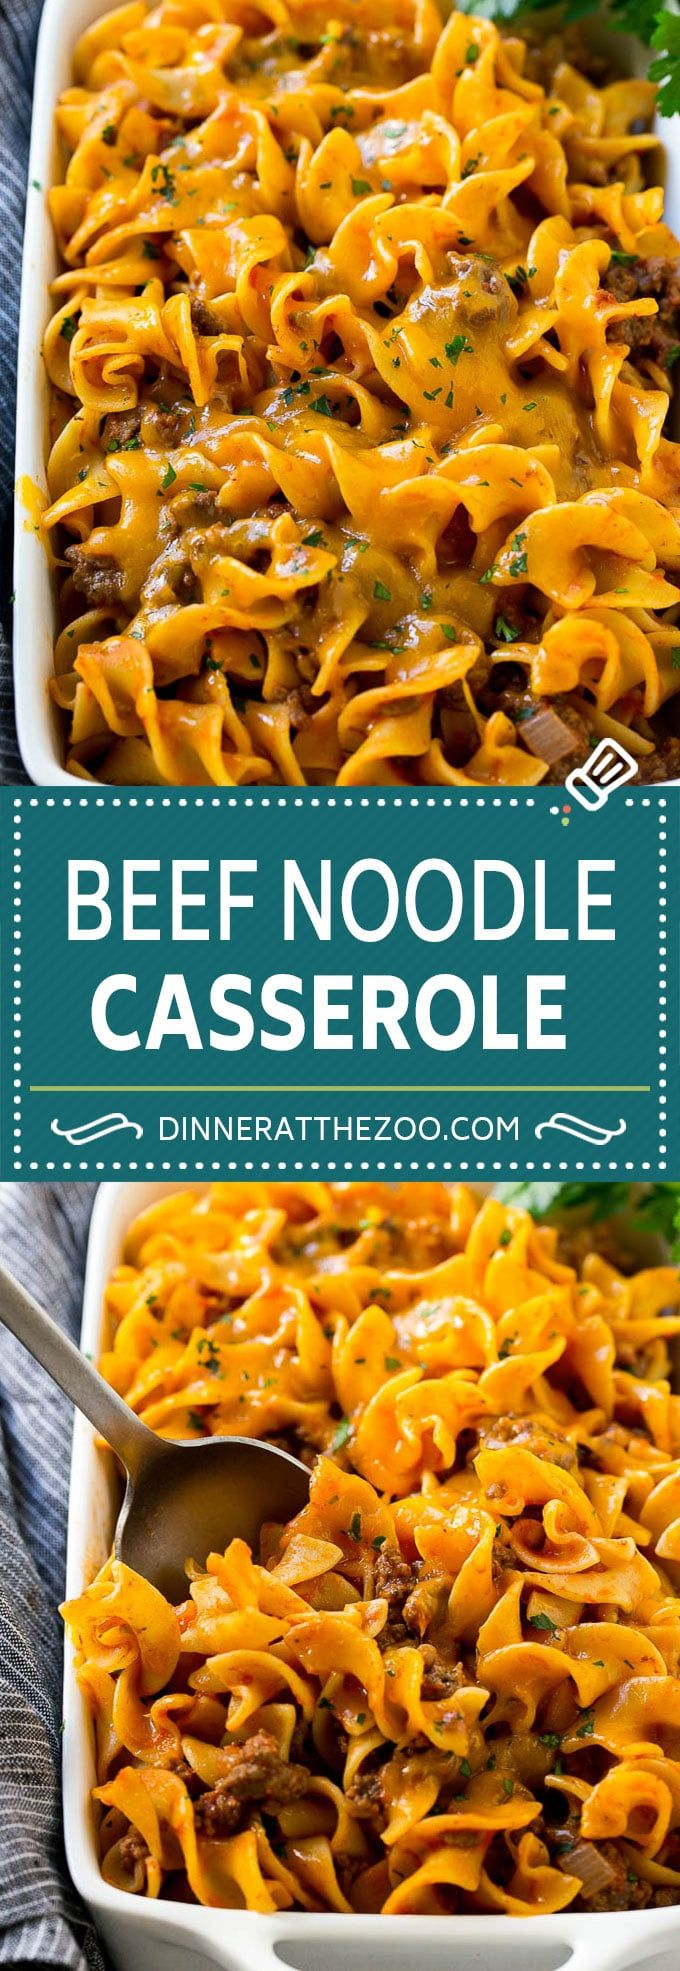 Beef Noodle Casserole Recipe Ground Beef Casserole Beef And Egg Noodles Beef Recipes Easy Beef Dinner Beef Recipes For Dinner